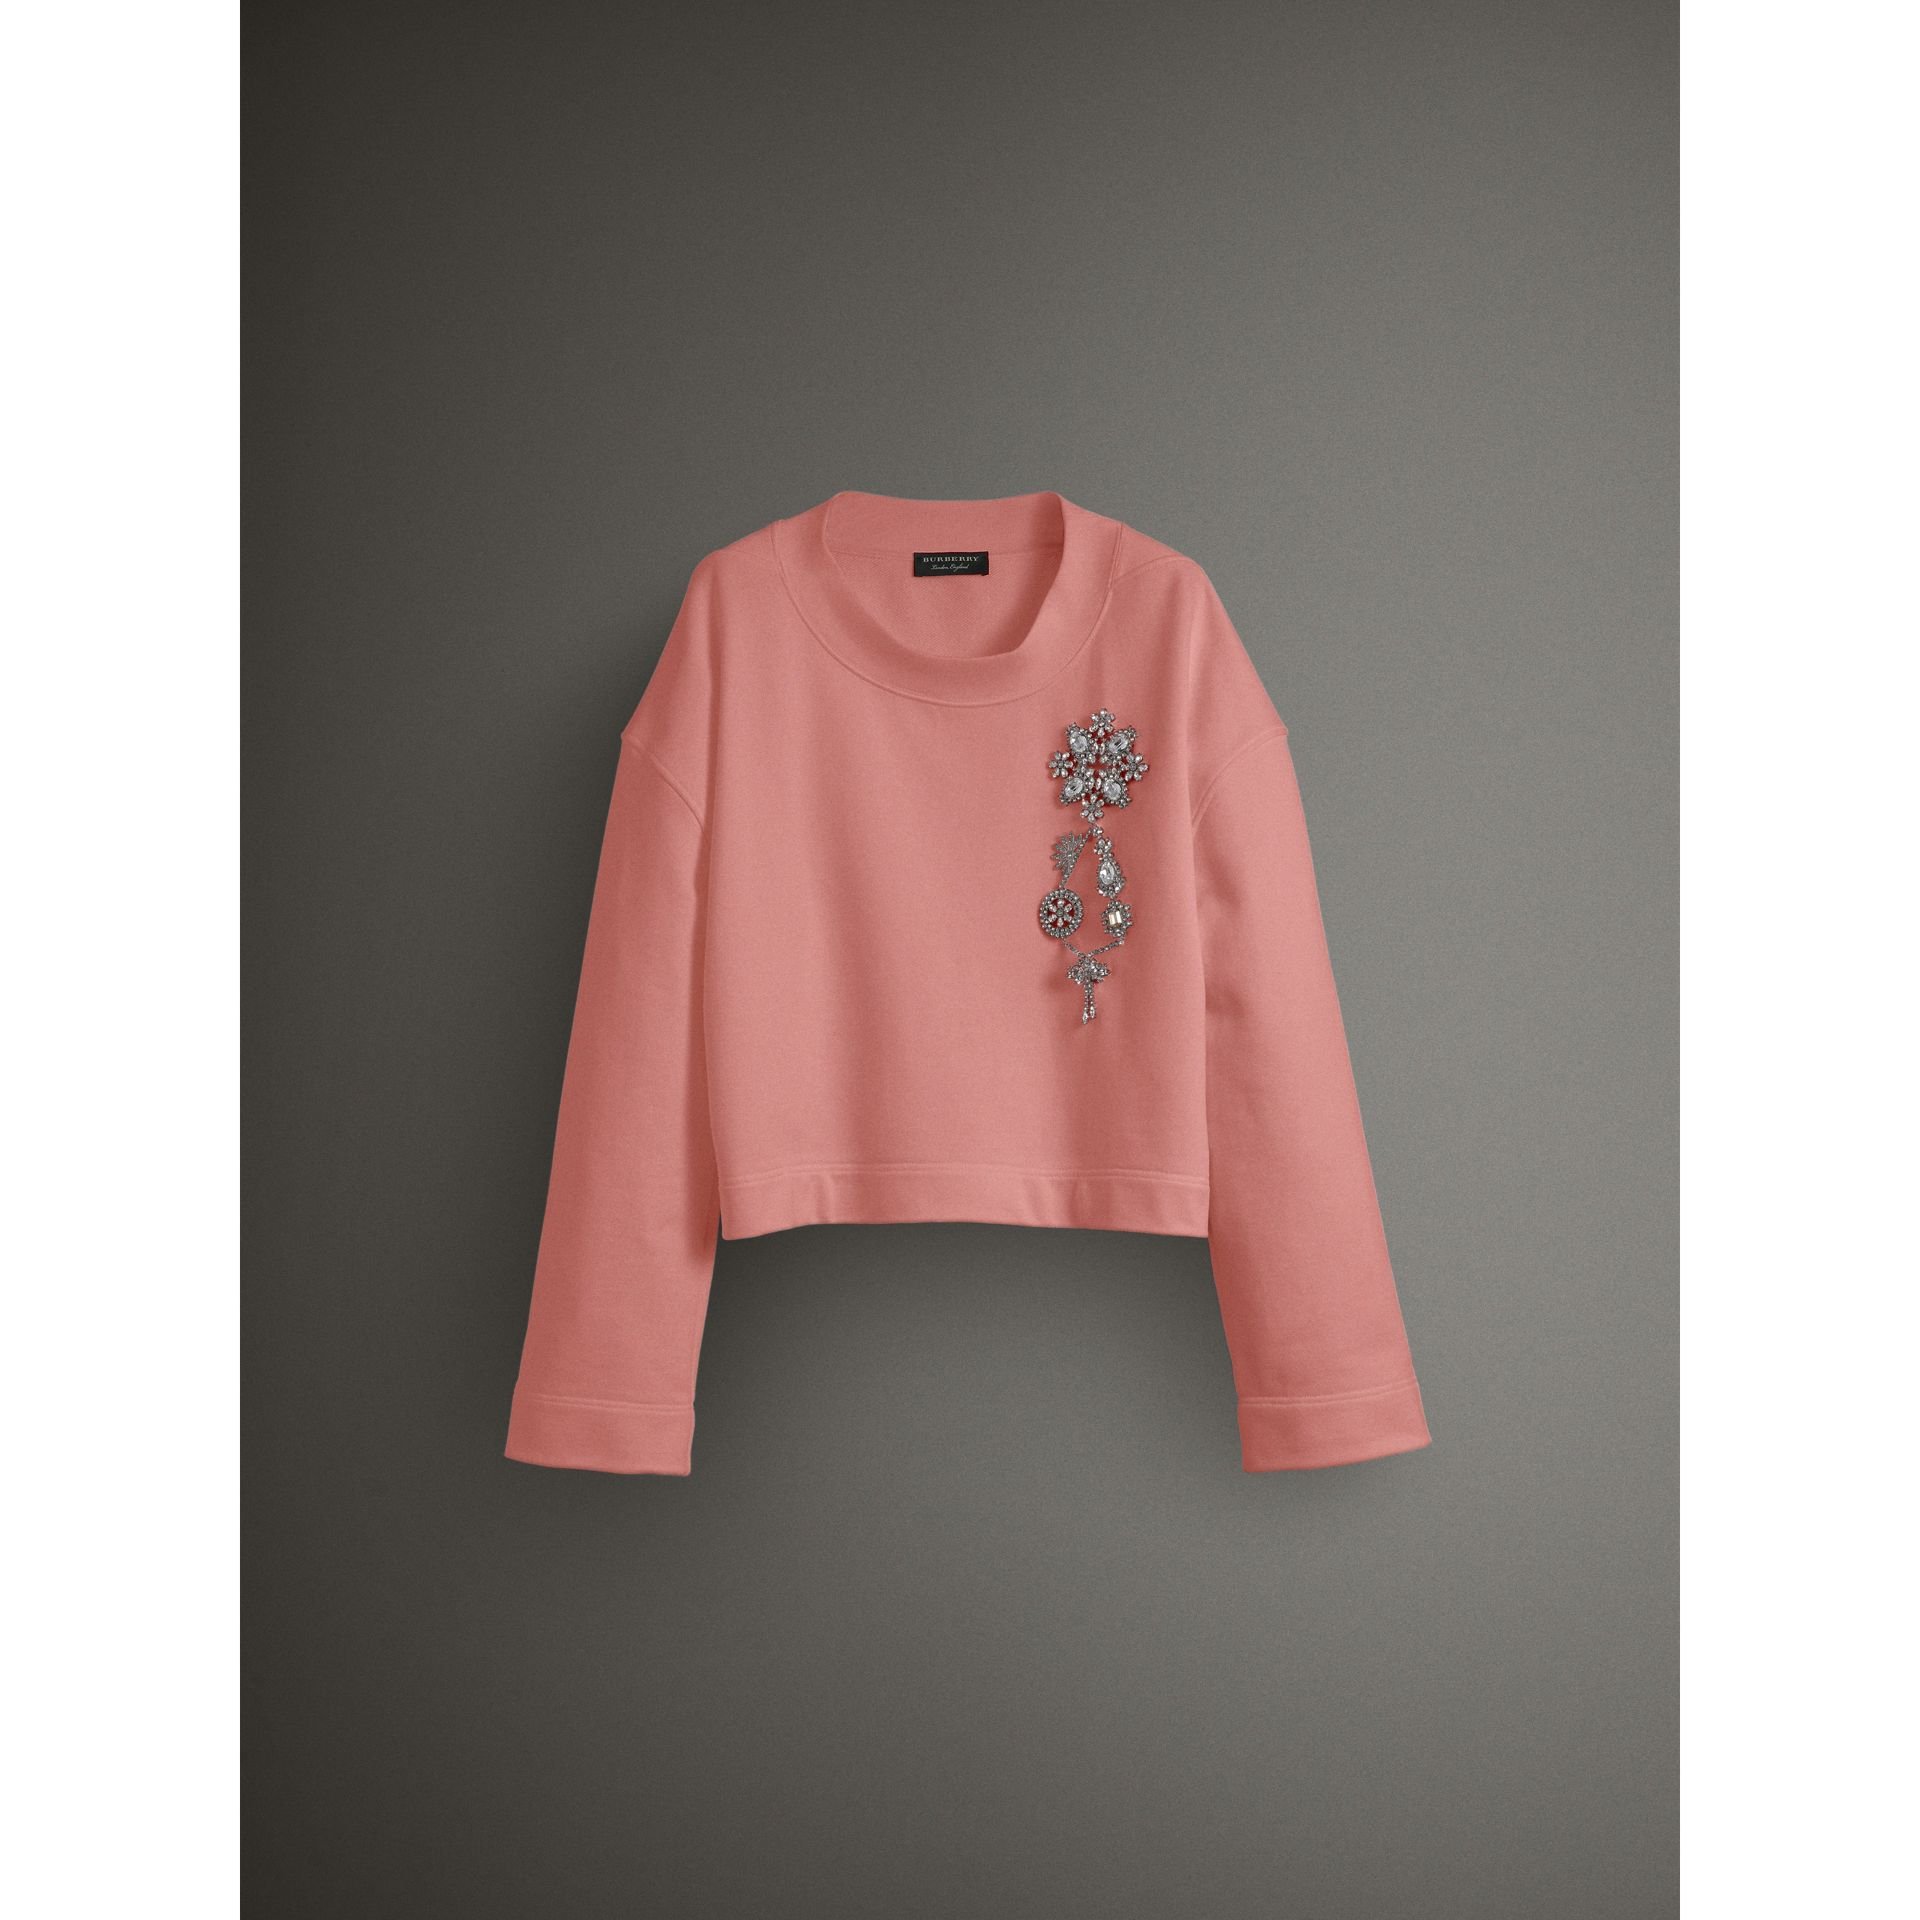 Cropped Sweatshirt with Crystal Brooch in Vintage Rose - Women | Burberry Australia - gallery image 3